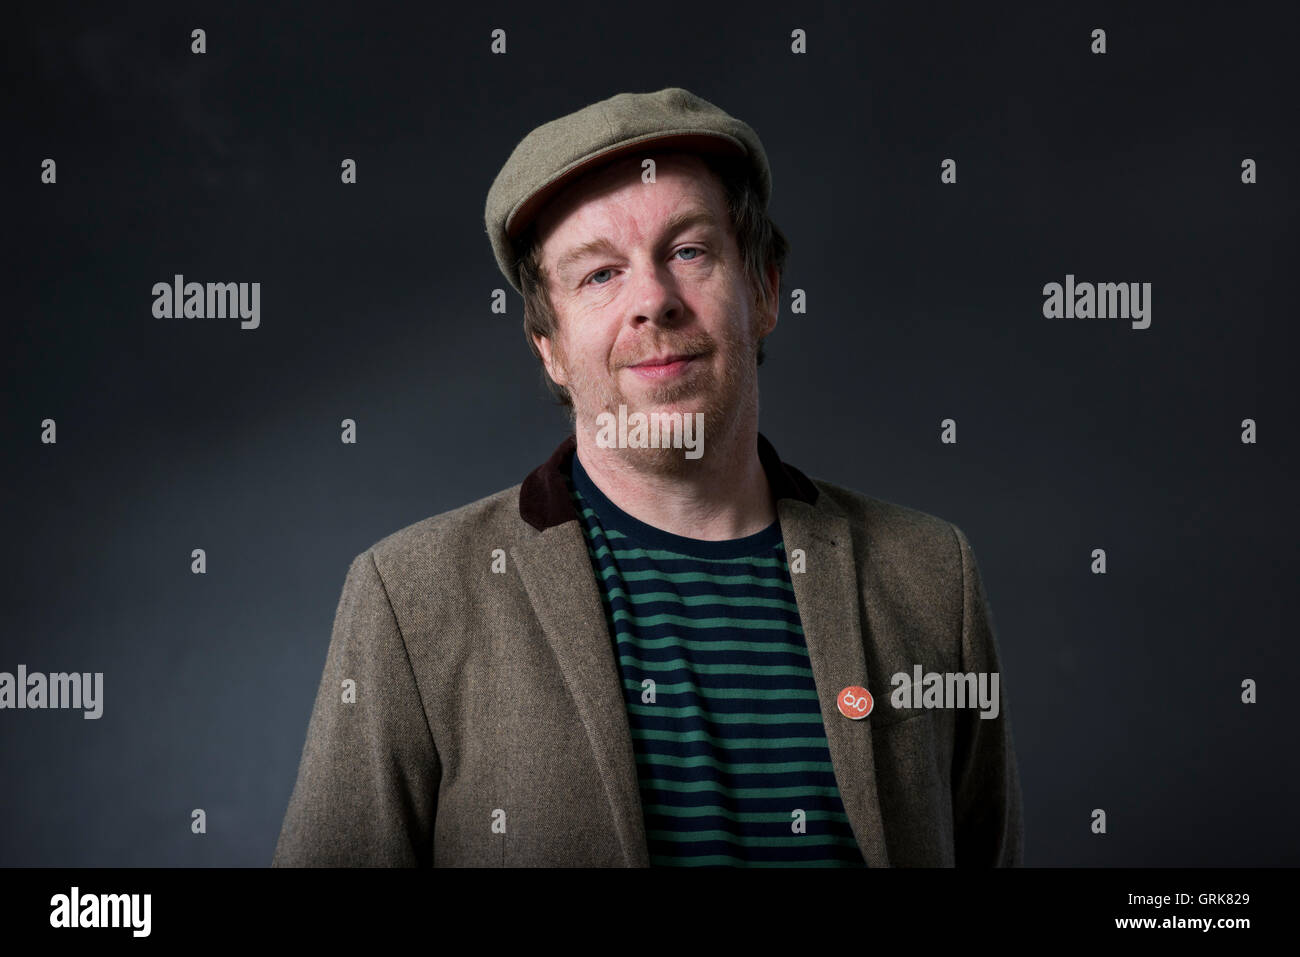 Irish writer Kevin Barry. - Stock Image